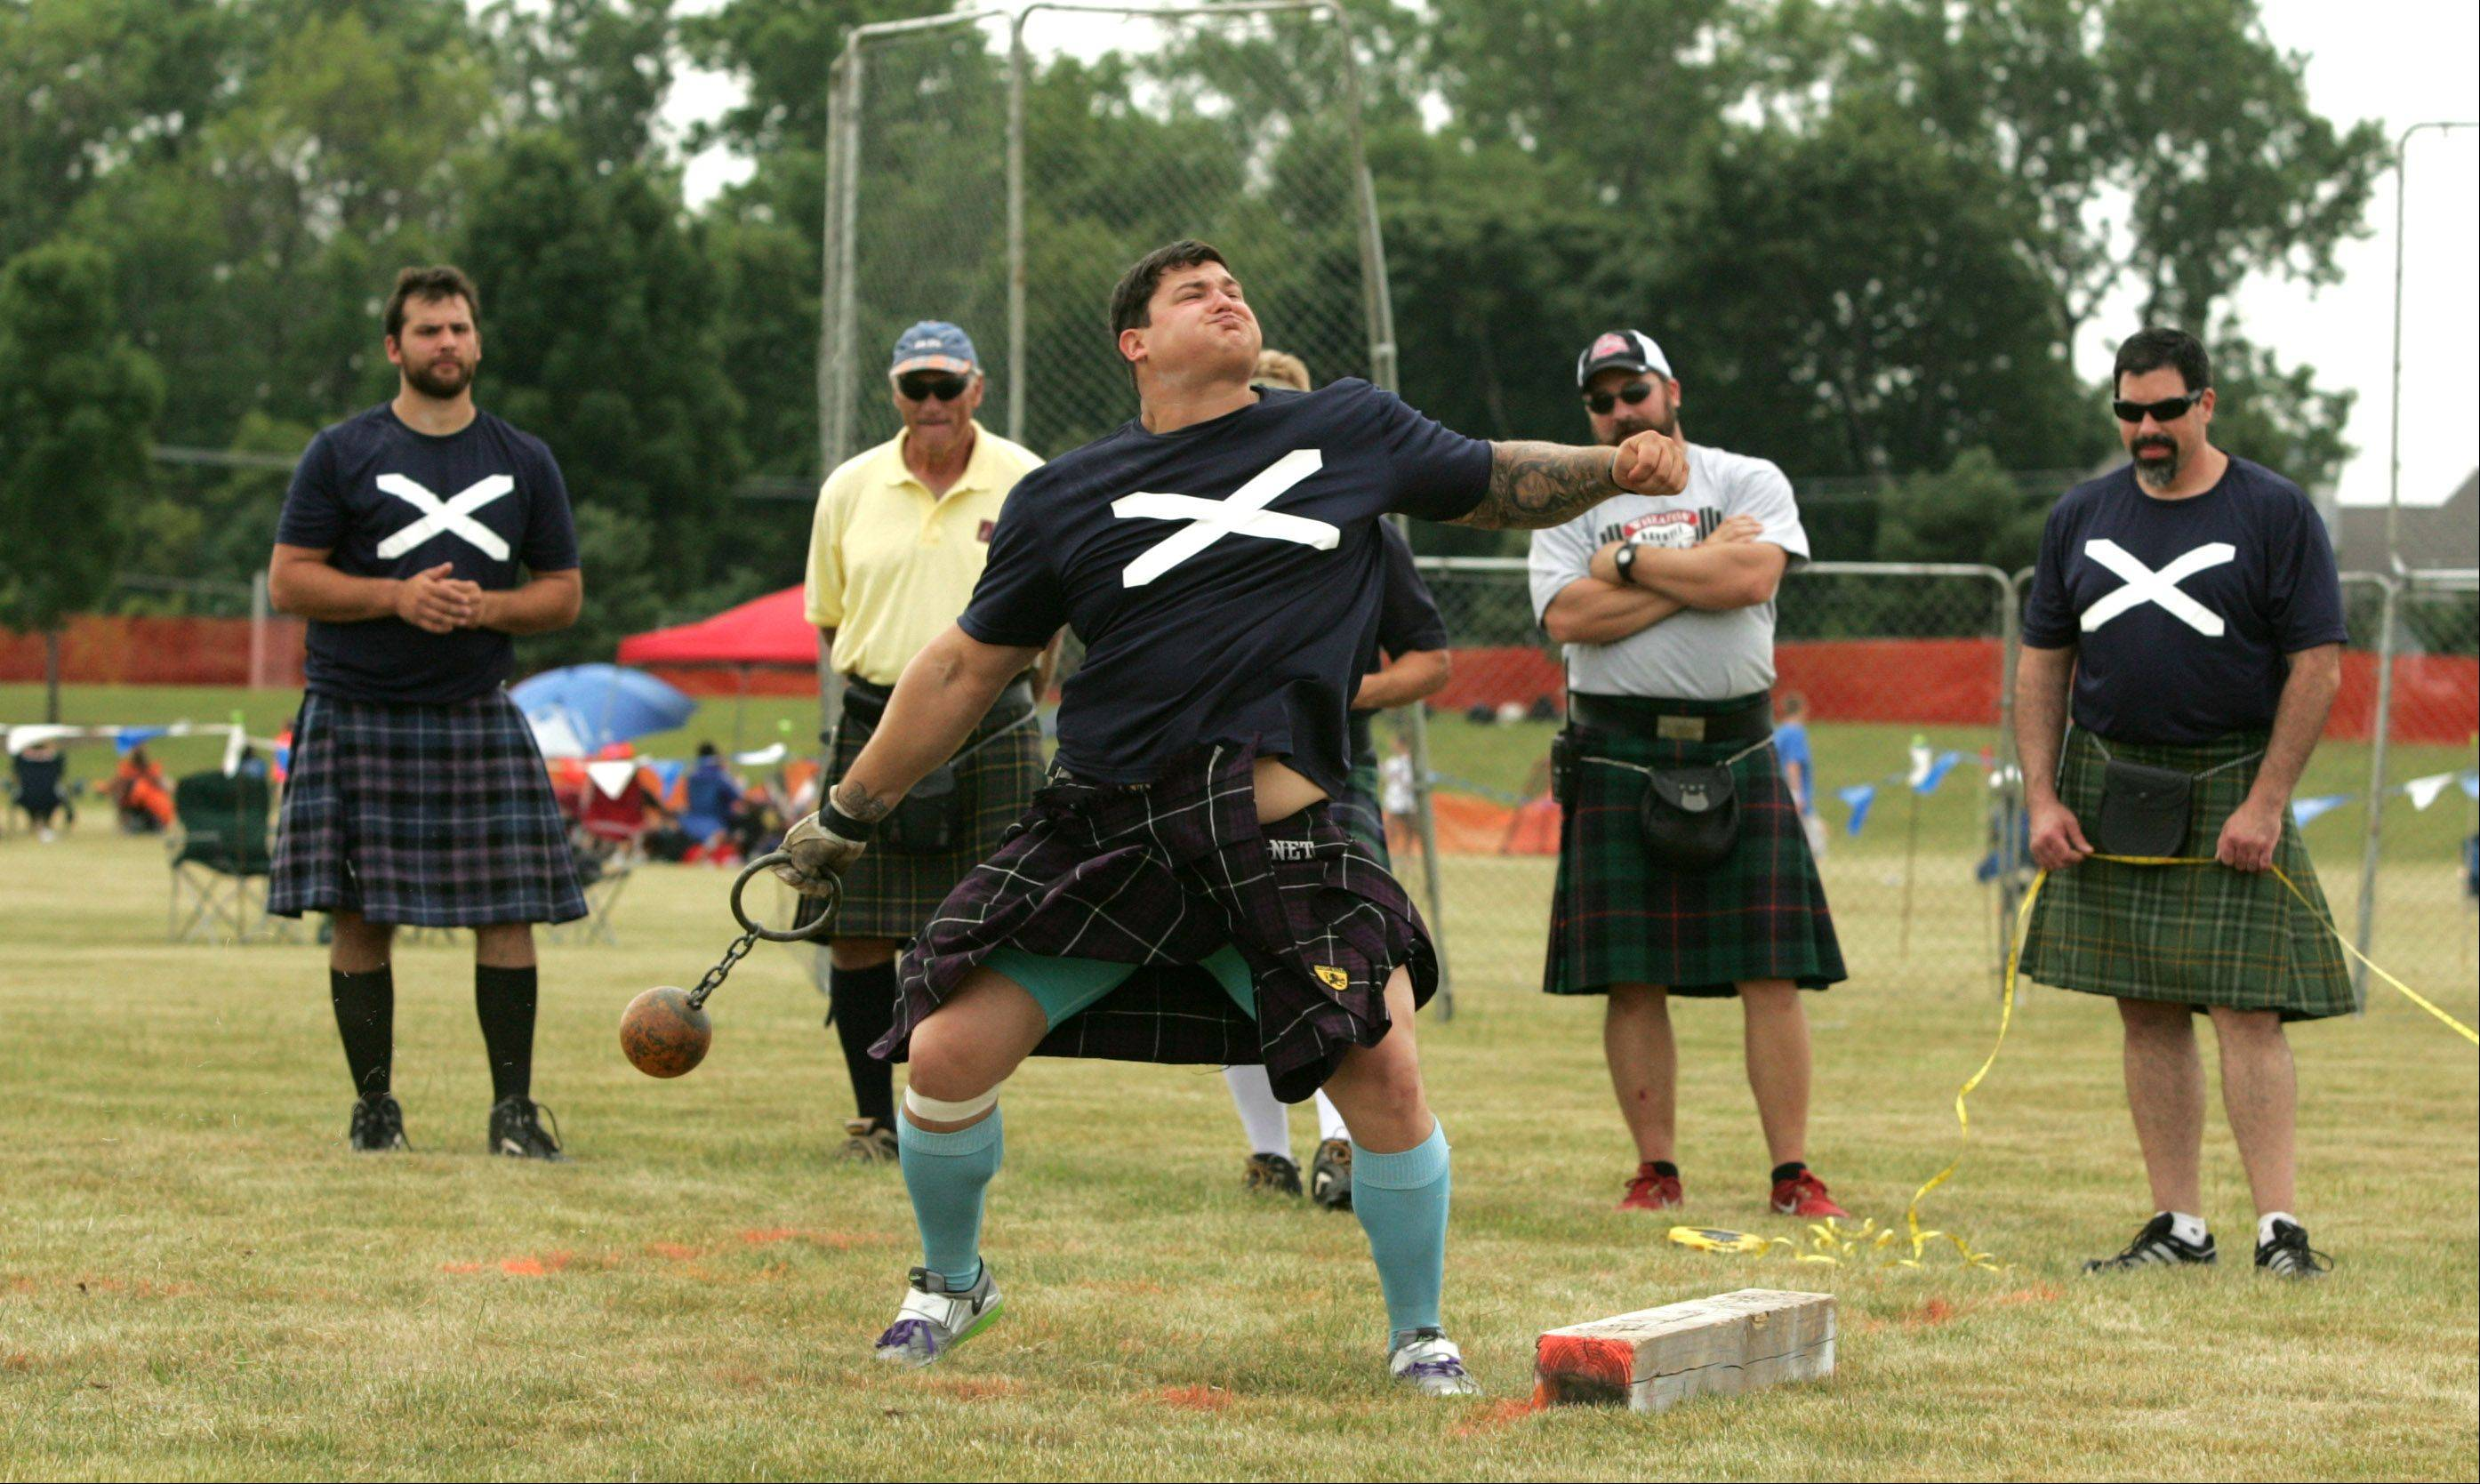 Matt Vincent of Baton Rouge, La., wins the 28-pound weight throw for distance event during heavy athletics competitions Saturday at the 26th annual Illinois St. Andrew Society Scottish Festival and Highland Games. His 91-foot, 10-inch toss won the event, setting a new course record.